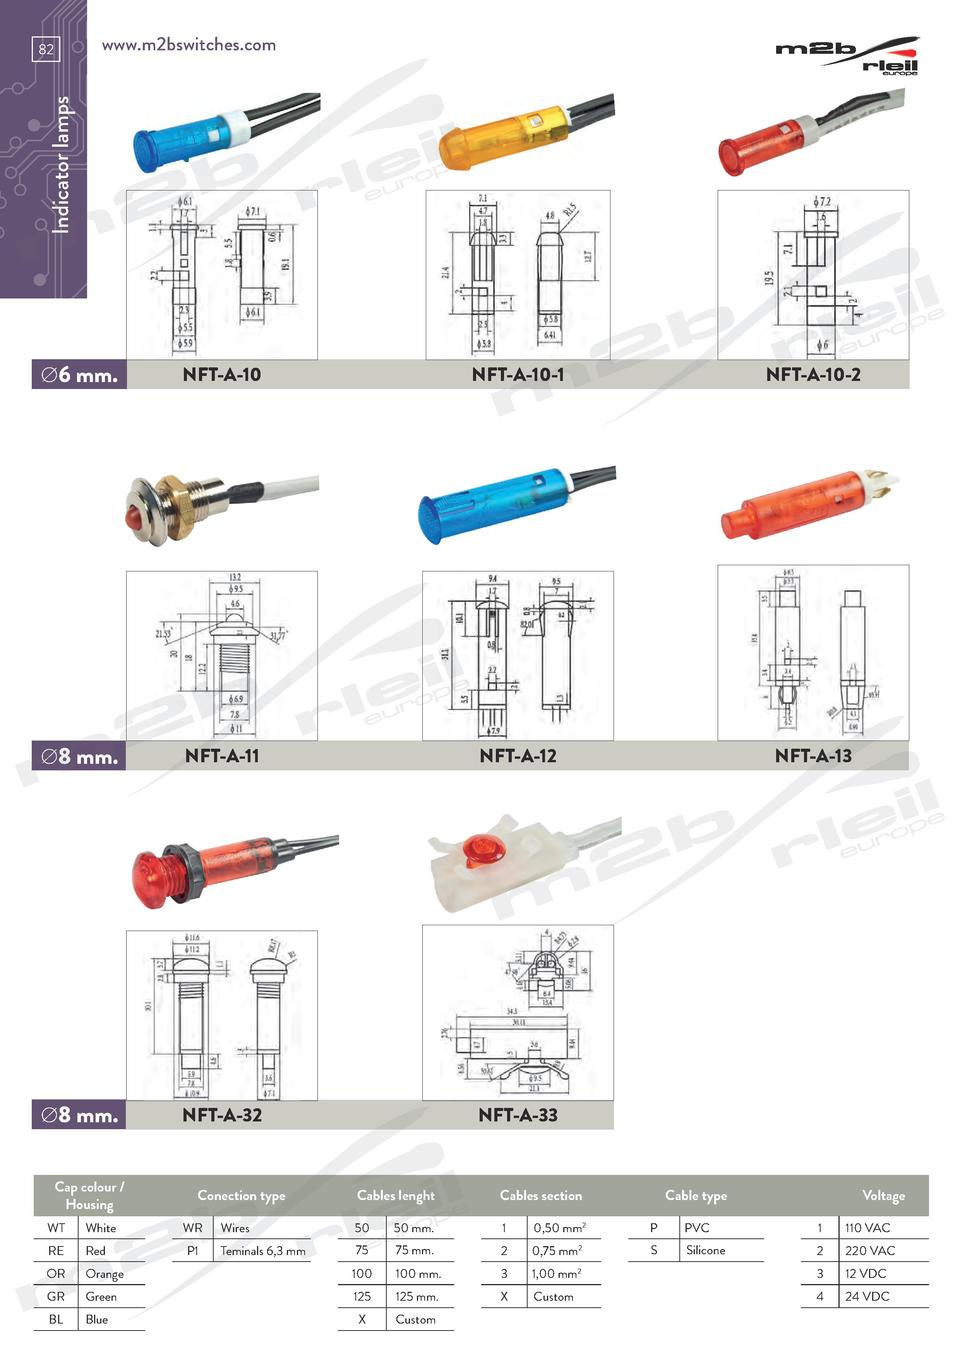 www.m2bswitches.com  Indicator lamps  82    6 mm.  NFT-A-10  NFT-A-10-1  NFT-A-10-2    8 mm.  NFT-A-11  NFT-A-12  NFT-A-13...